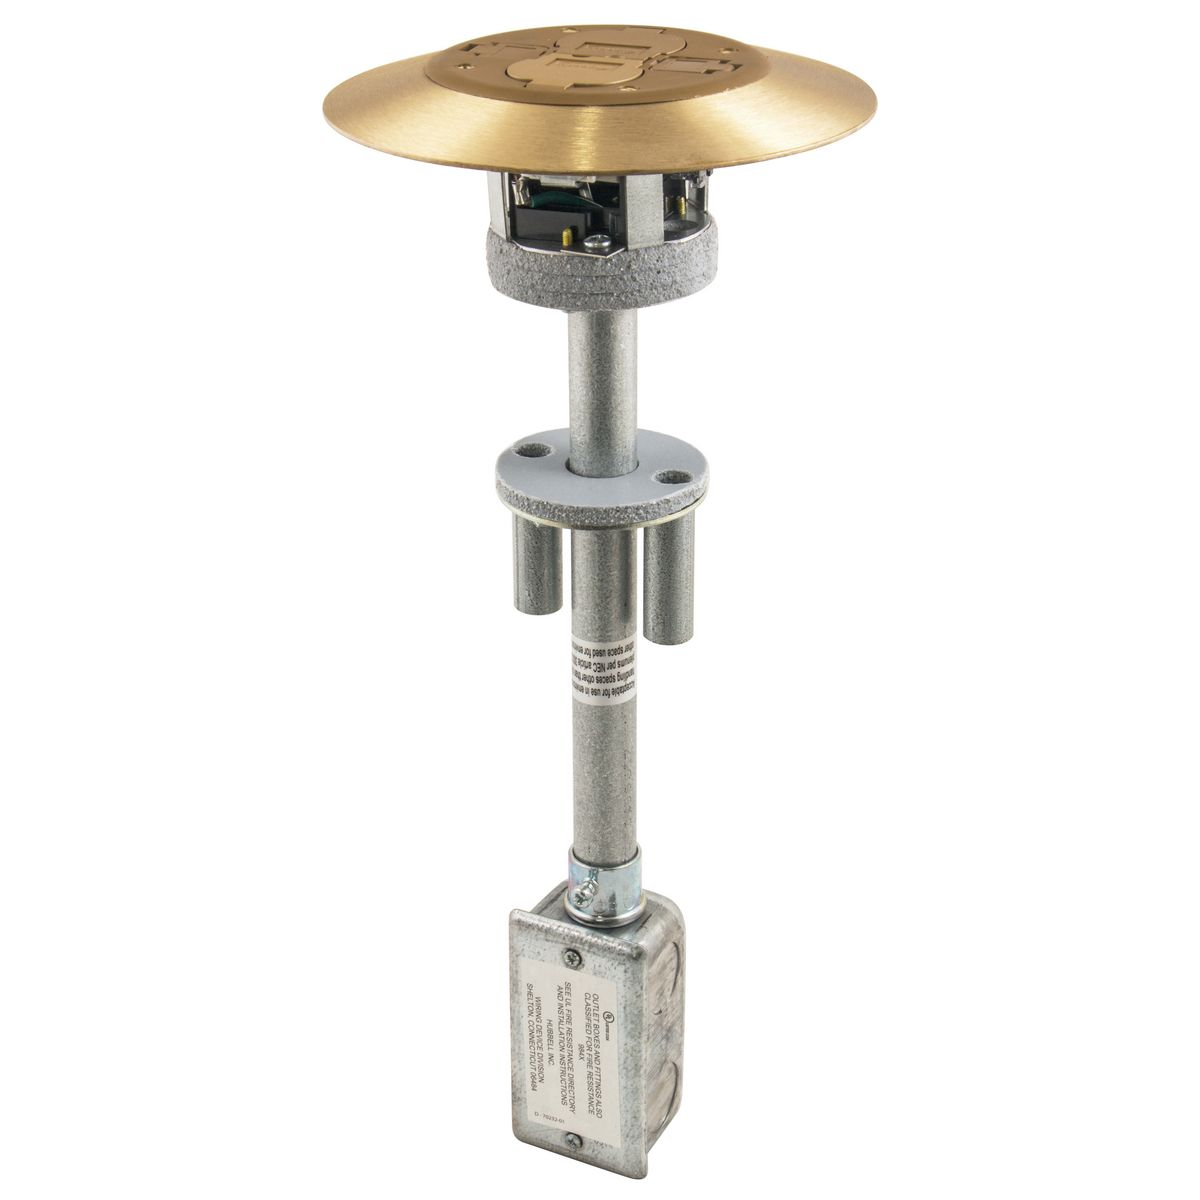 Hubbell PT2X2BRS 2 x 2 Flush Brass 1-Piece Concrete Floor Fire Rated Poke-Through Device